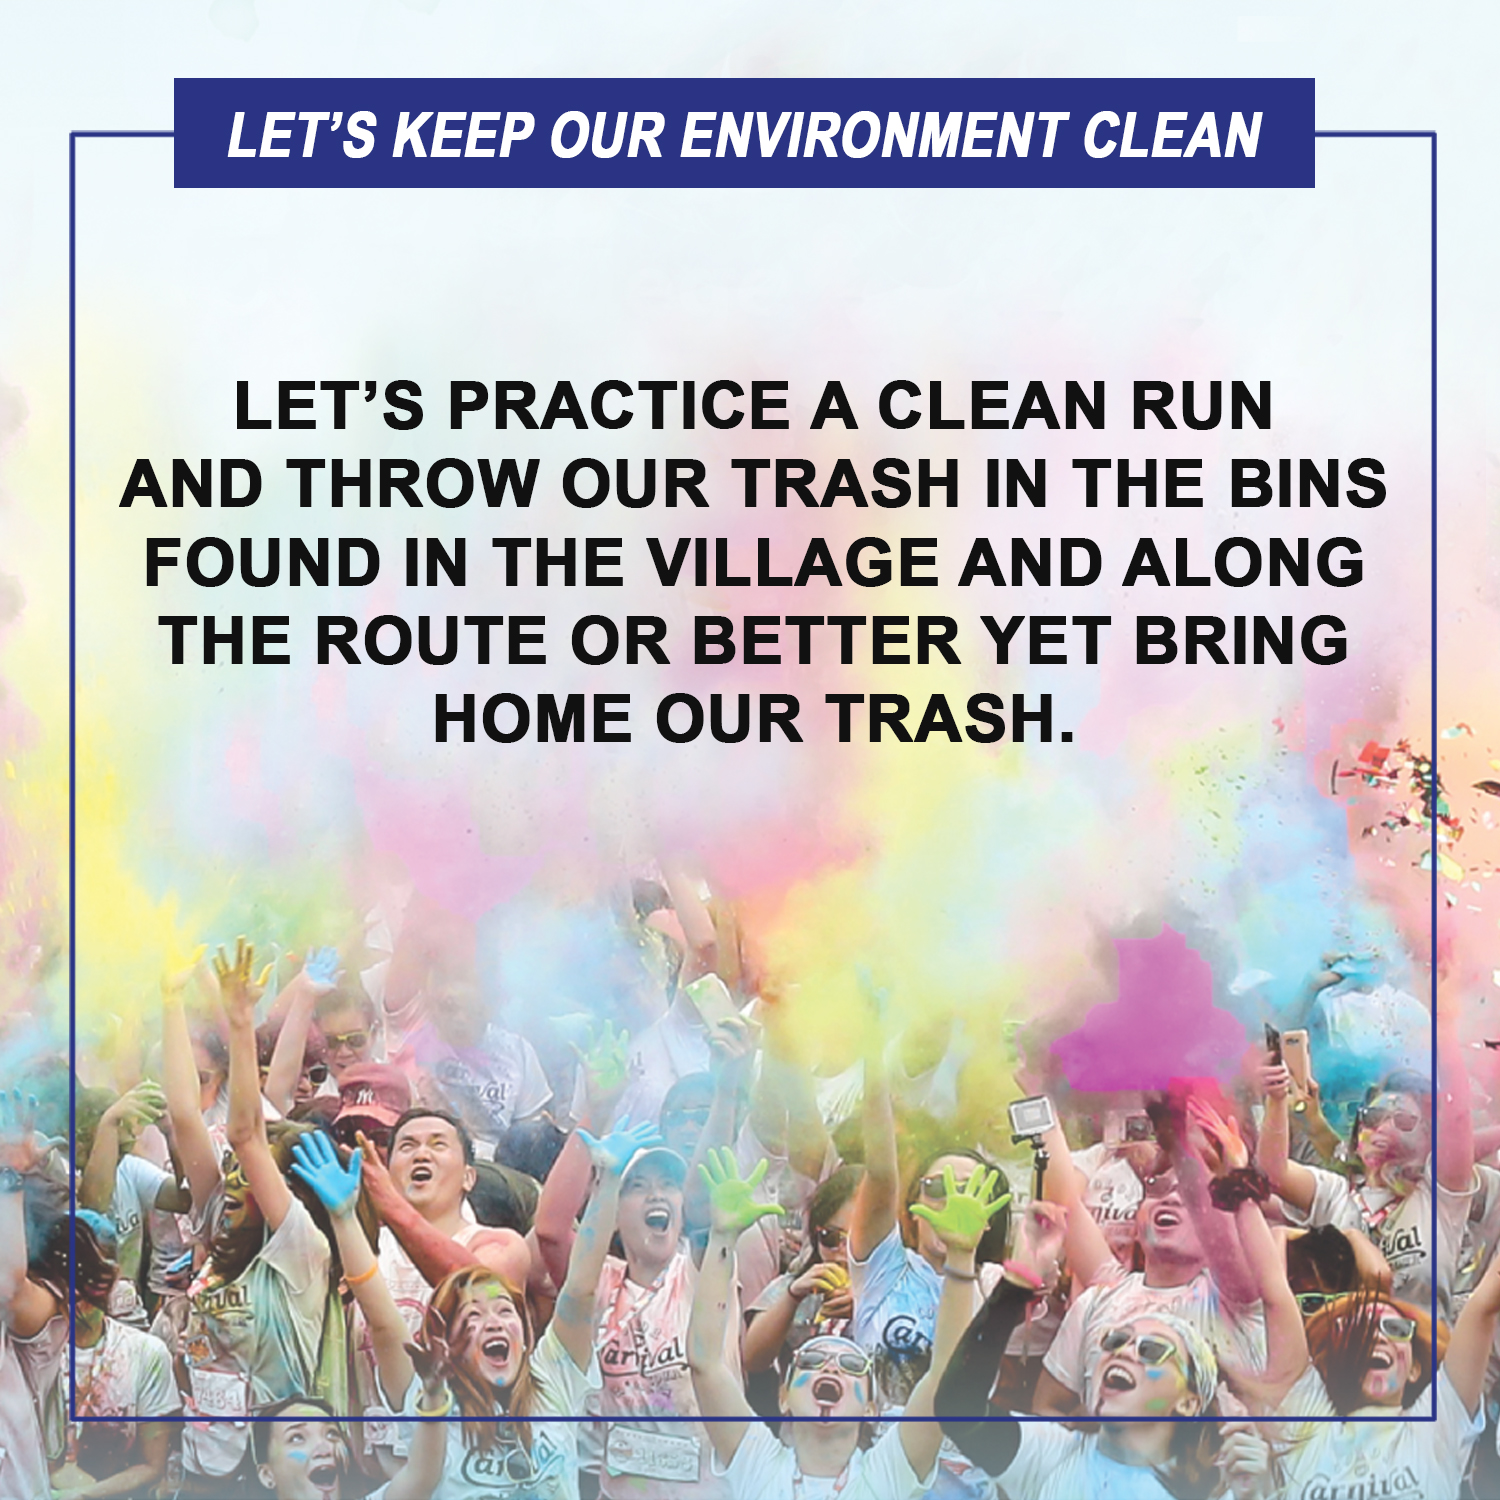 Lets keep our environment clean